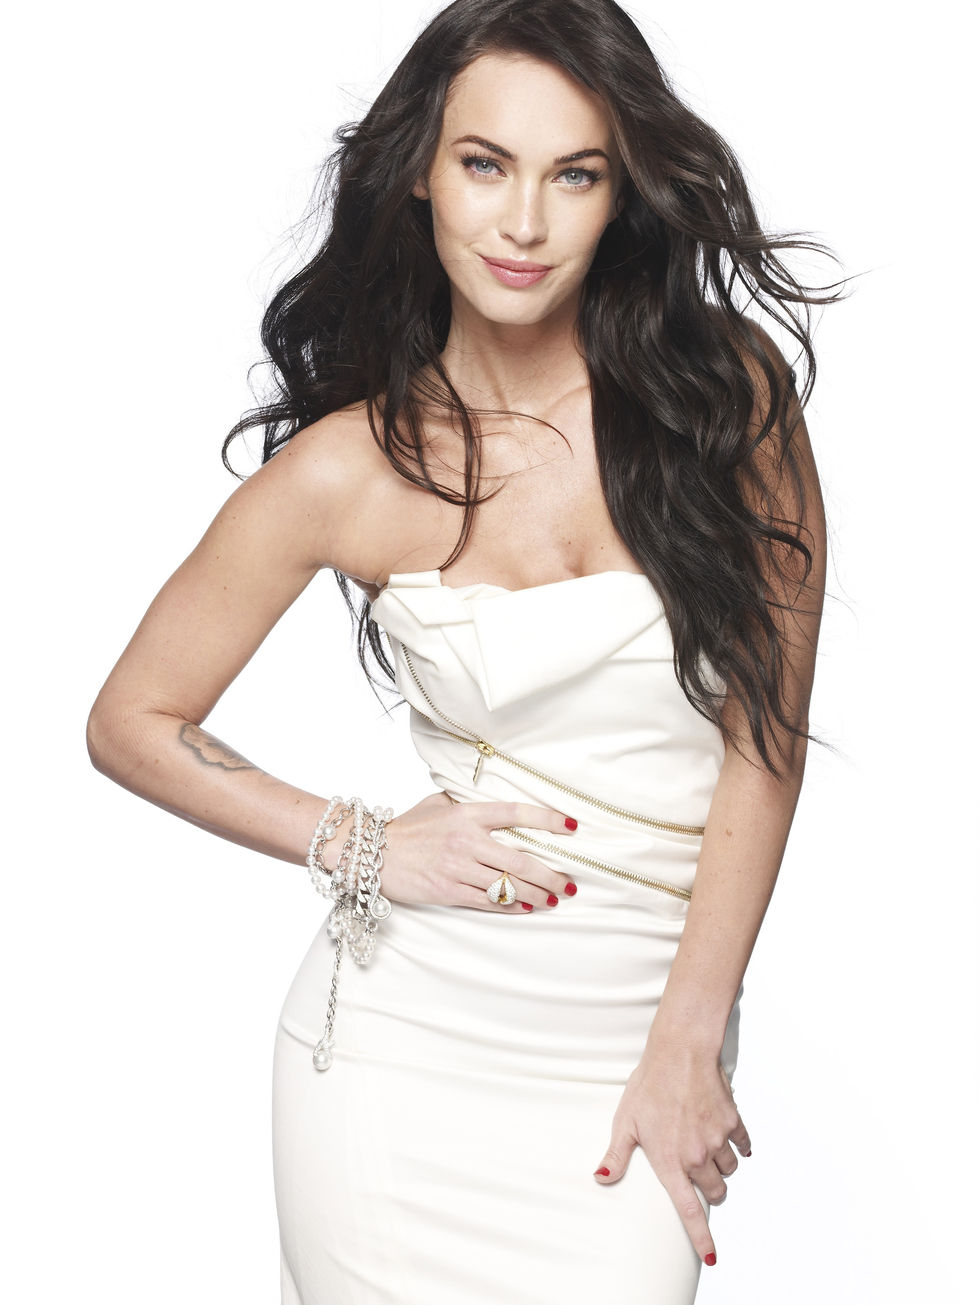 megan-fox-elle-magazine-photoshoot-outtakes-uhq-01